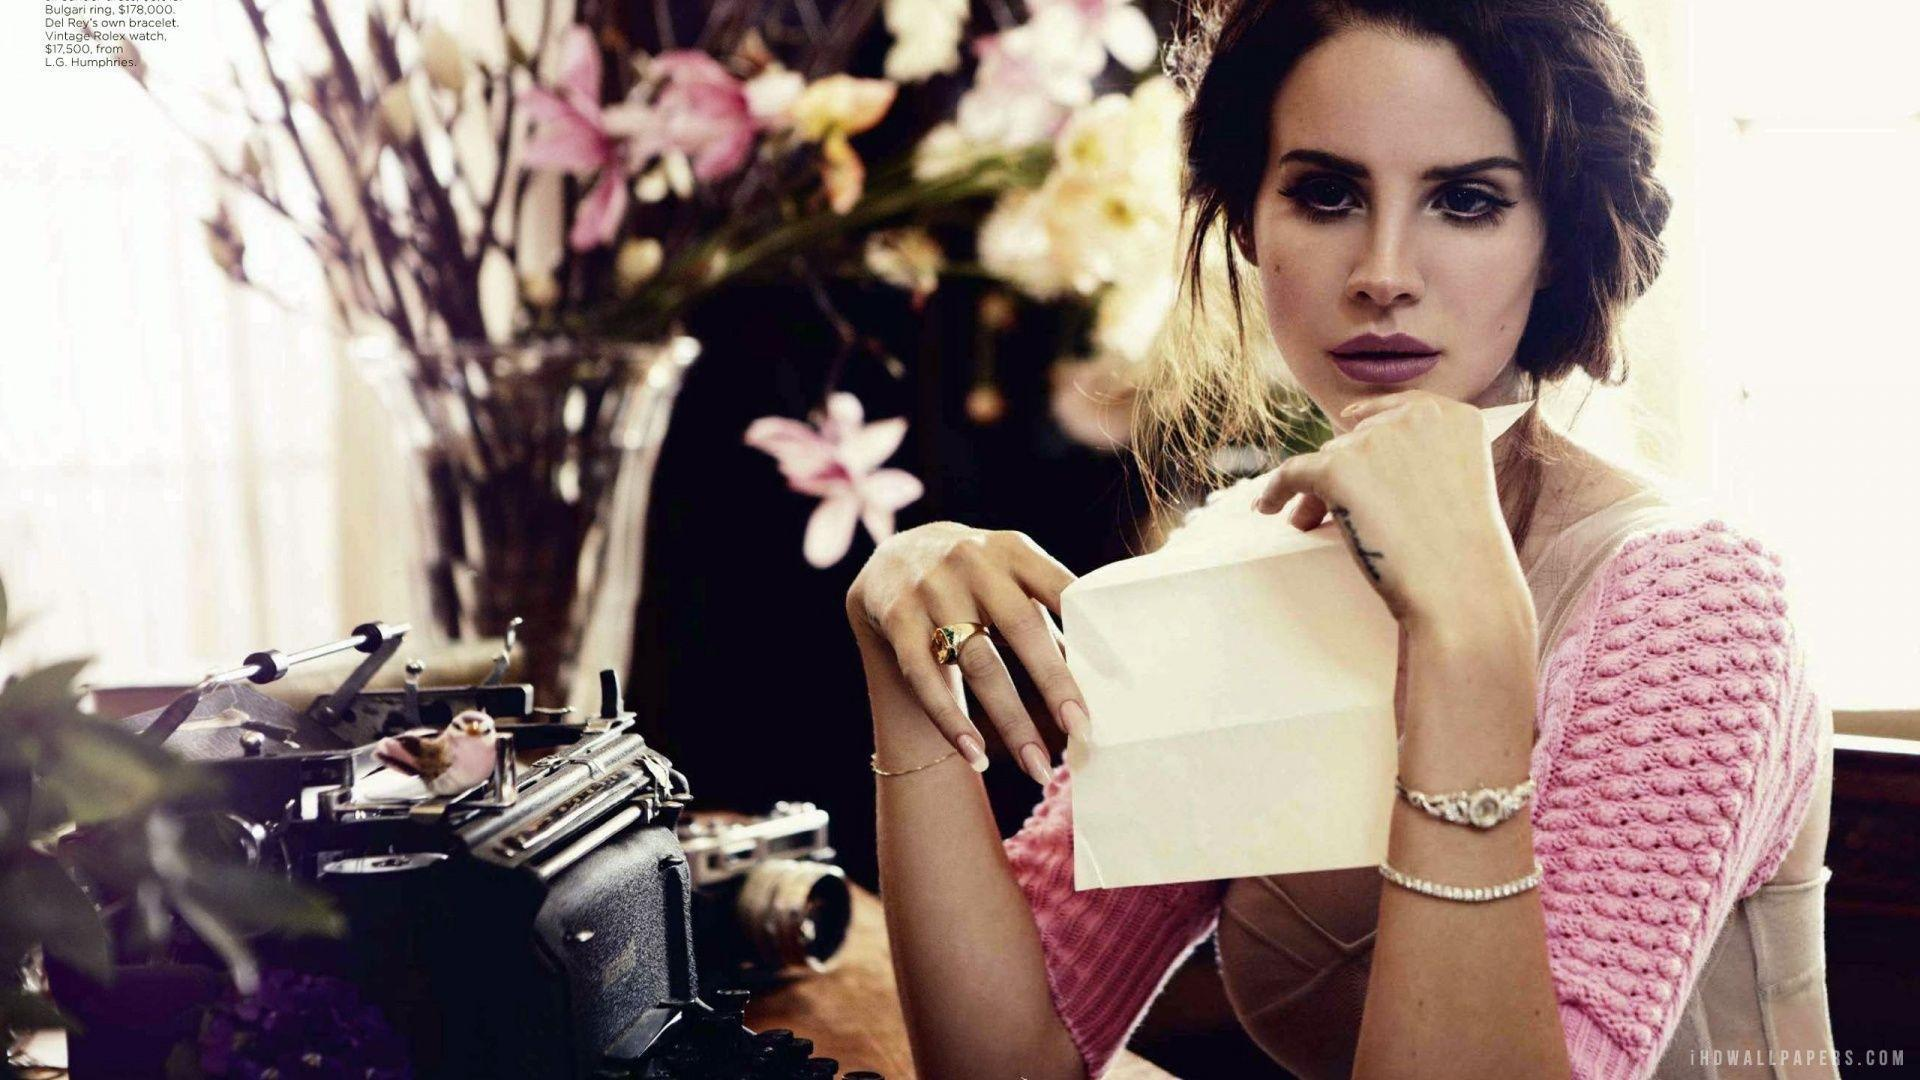 Lana Del Rey HD Wallpaper - iHD Wallpapers